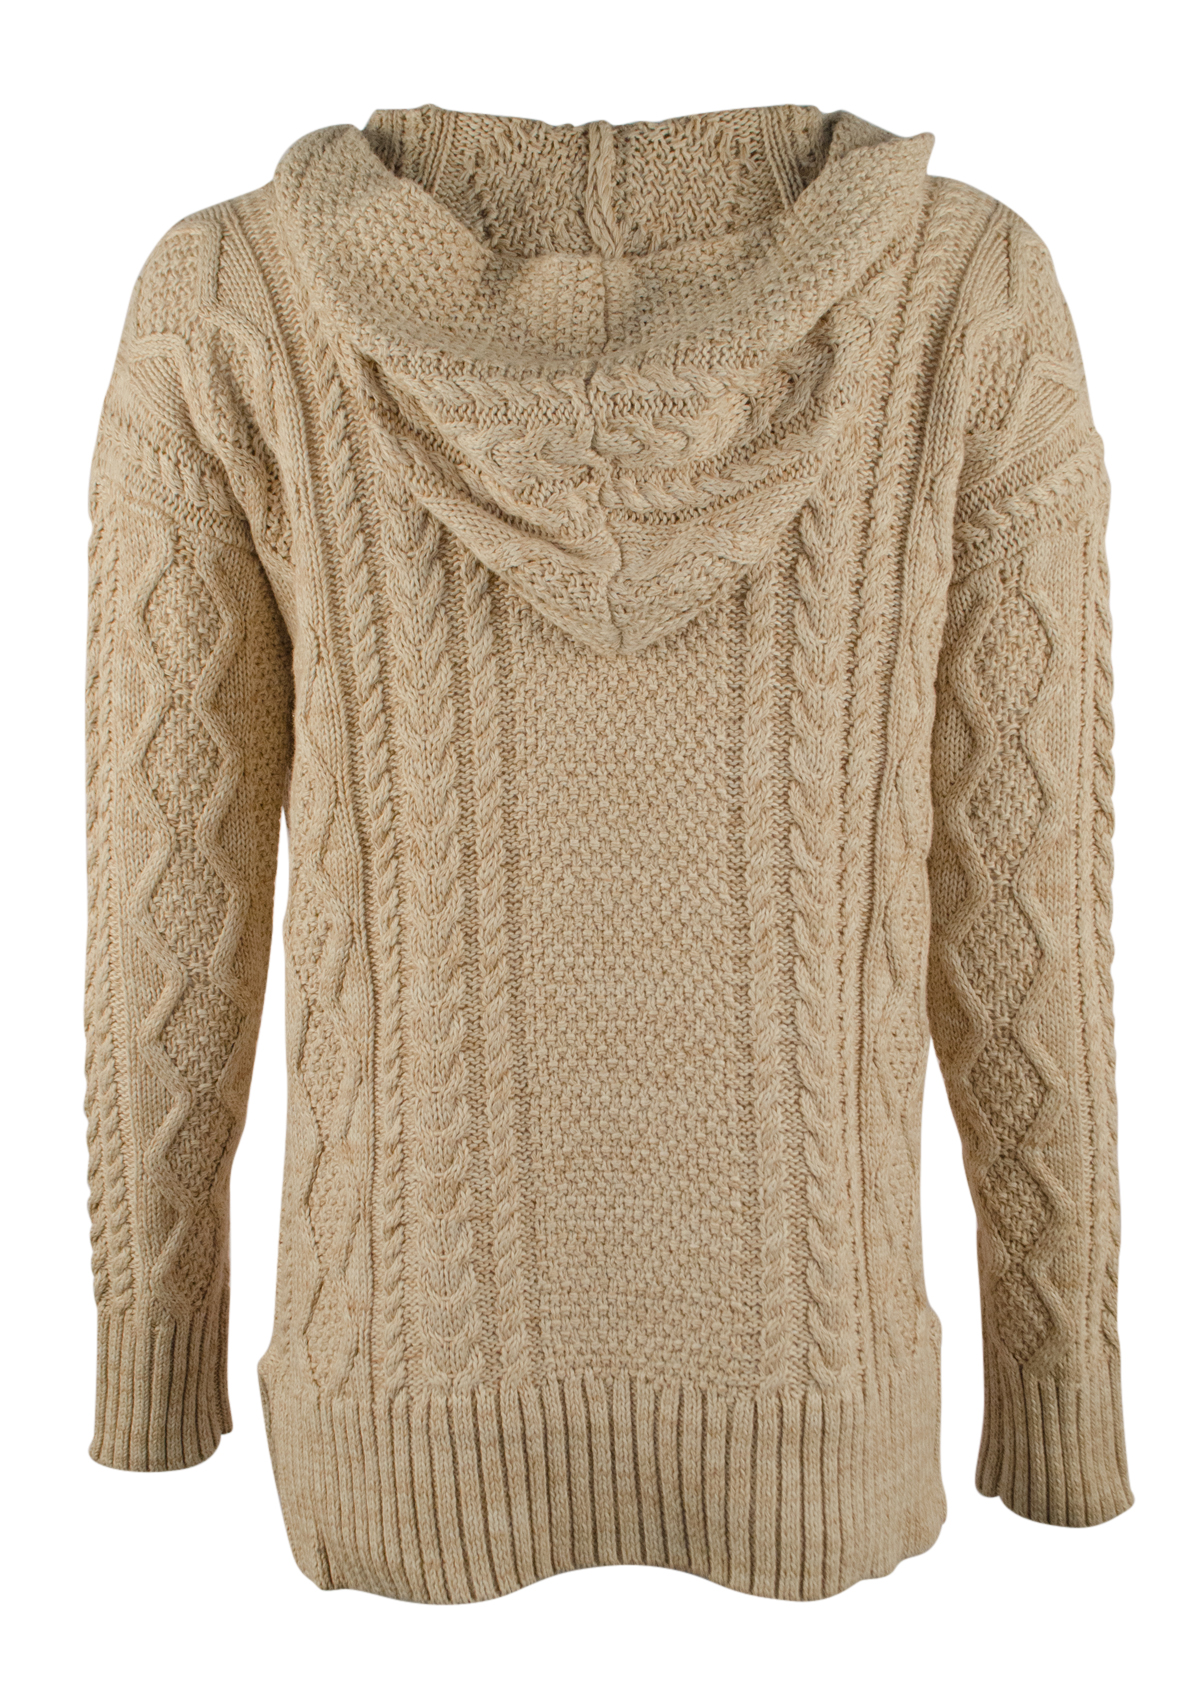 Ralph Lauren 1492 Size XL Natural Cable Knit Sweater Hoodie ...